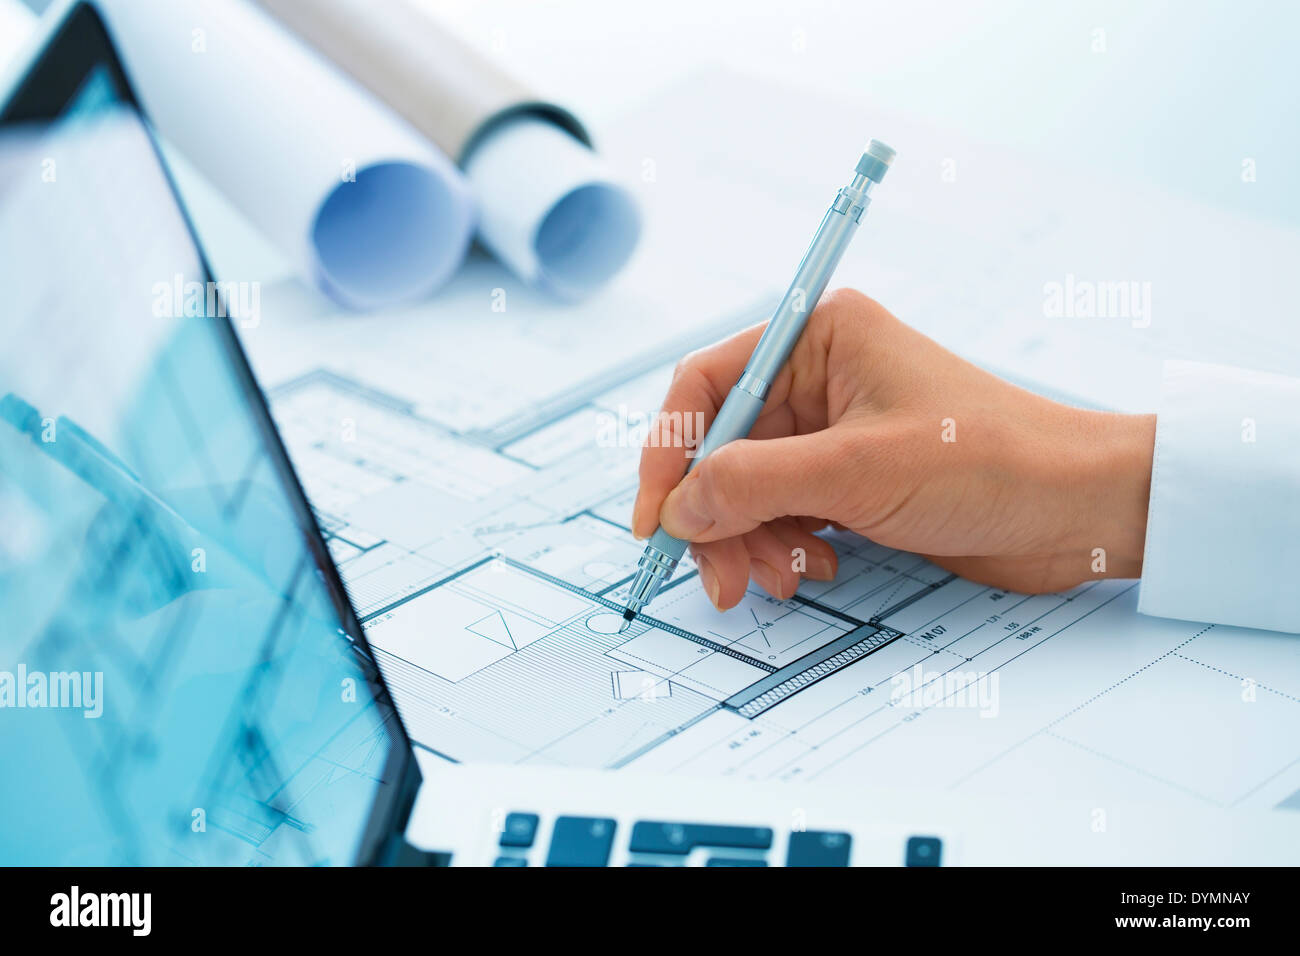 Architect drawing architectural project on blueprint engineering woman architect drawing on blueprint construction project stock photo malvernweather Image collections